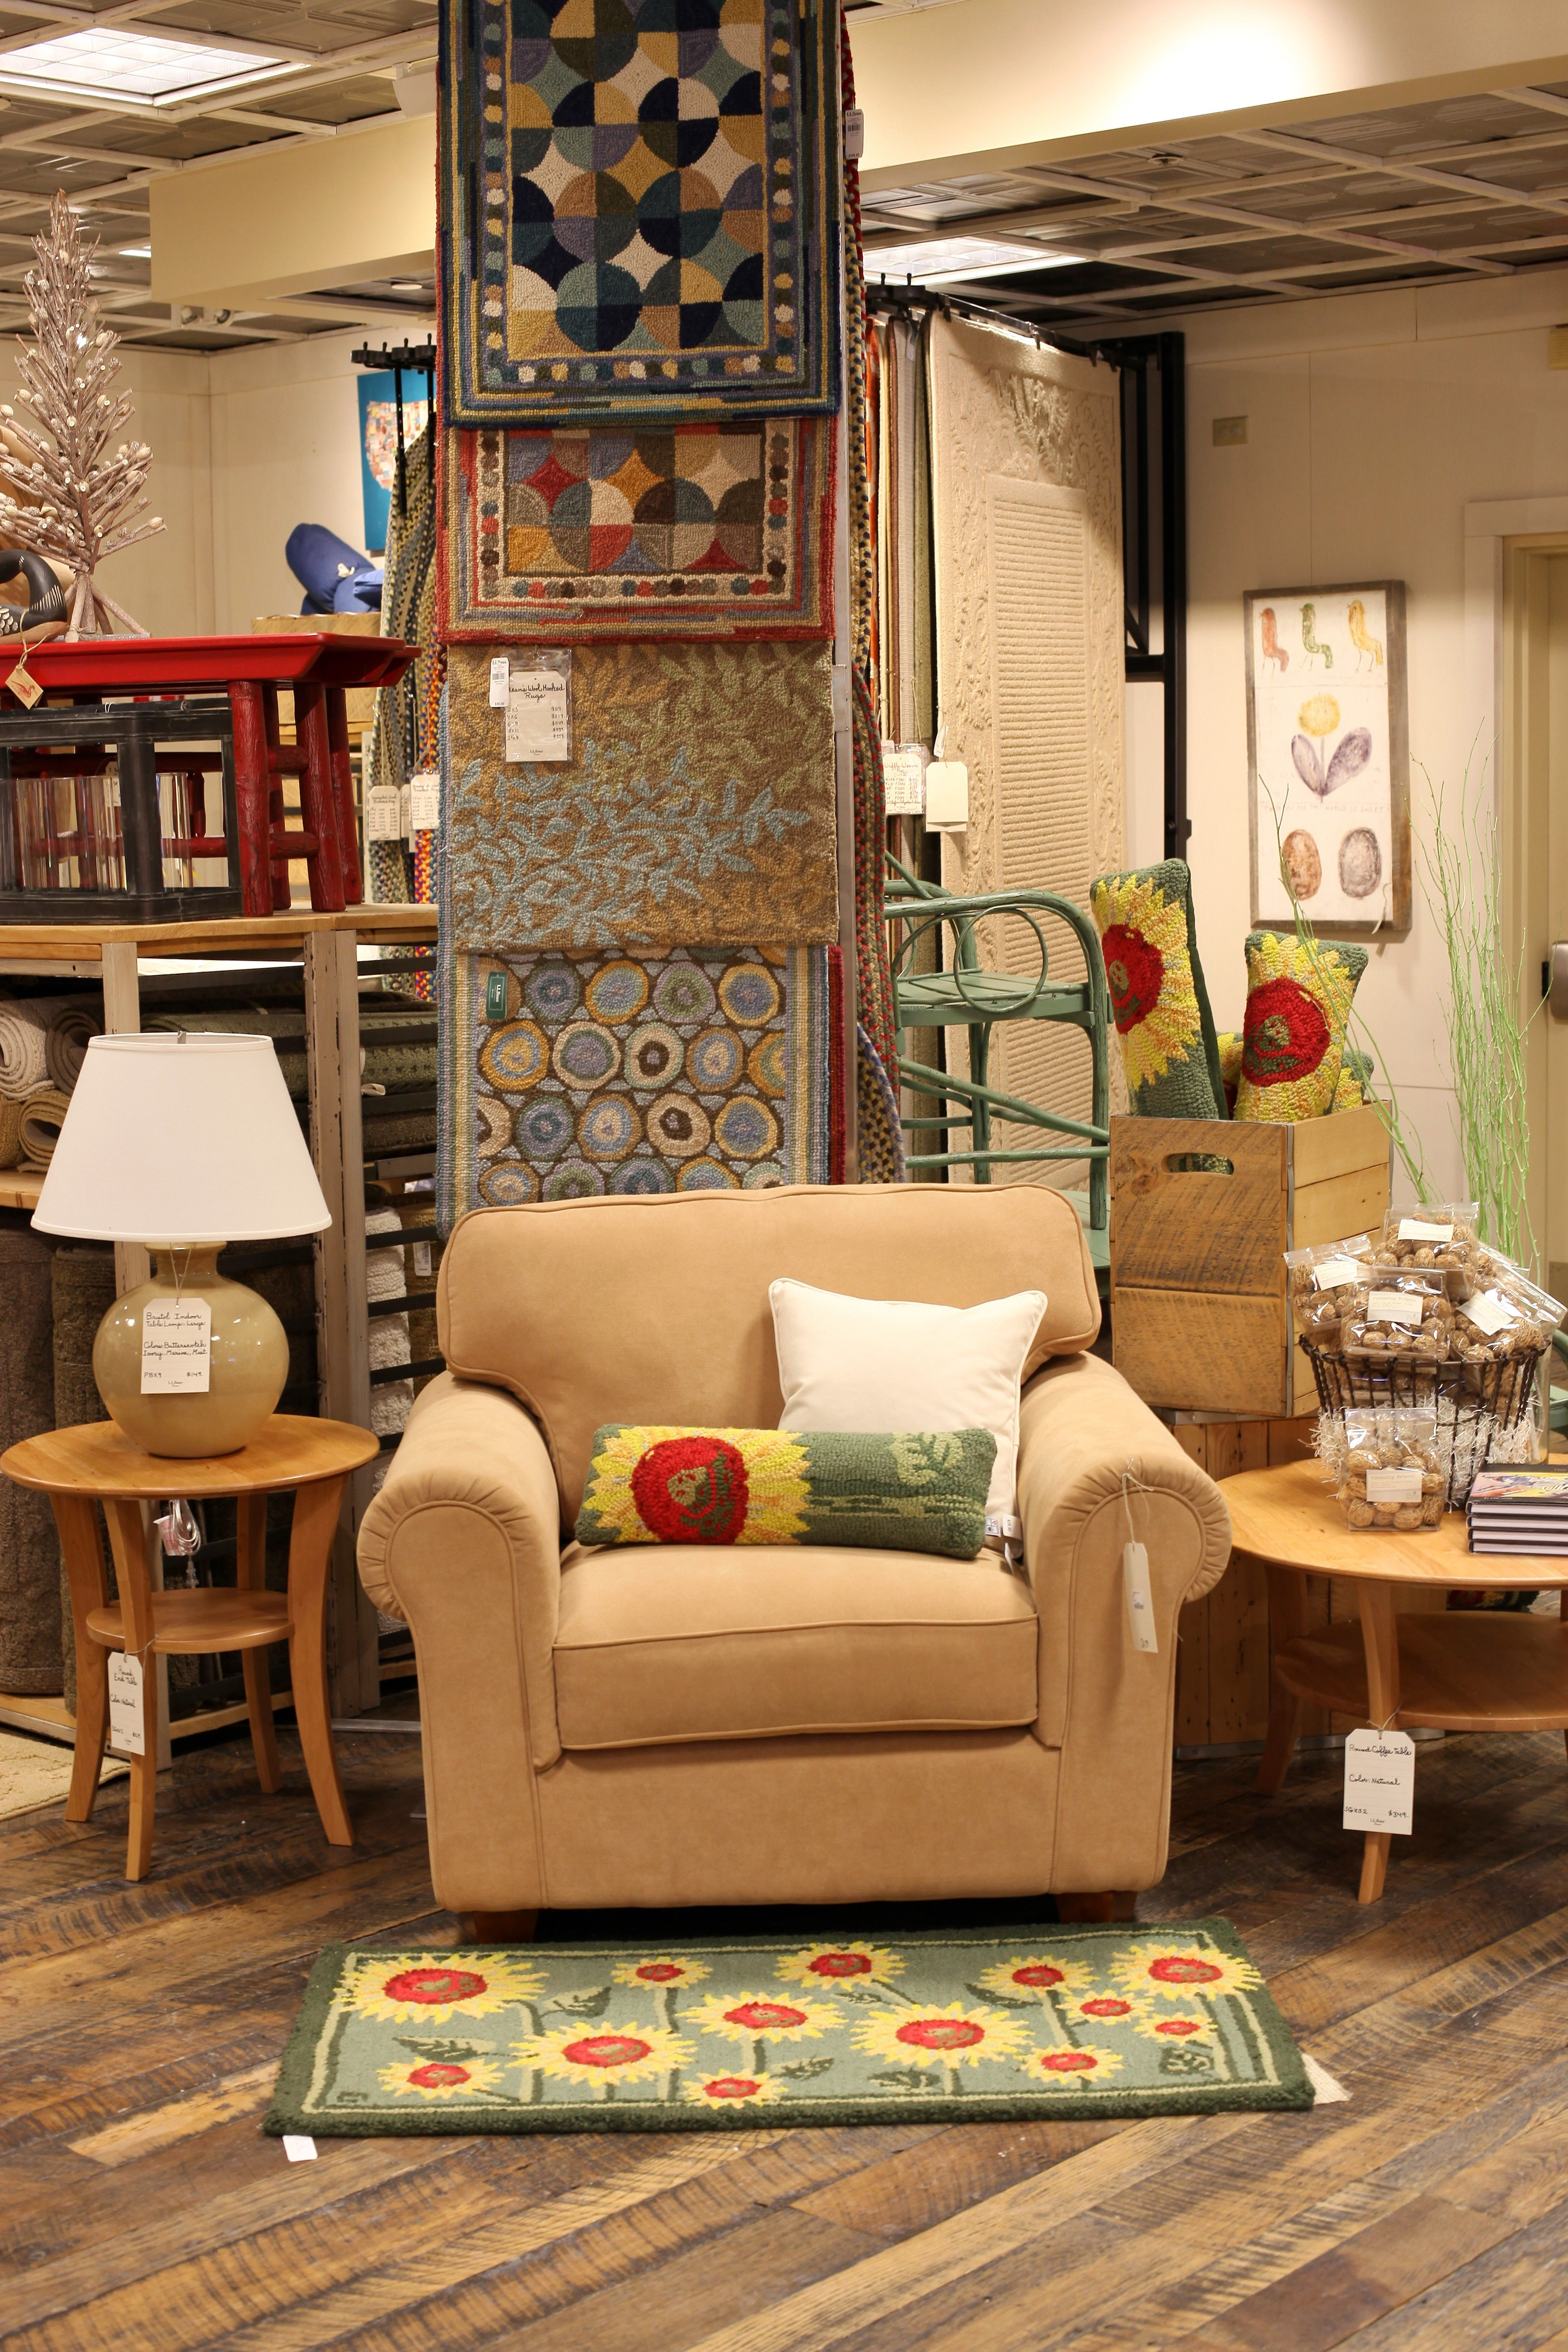 Wool rugs, tables, chairs, room accents at the L.L.Bean HOME store -